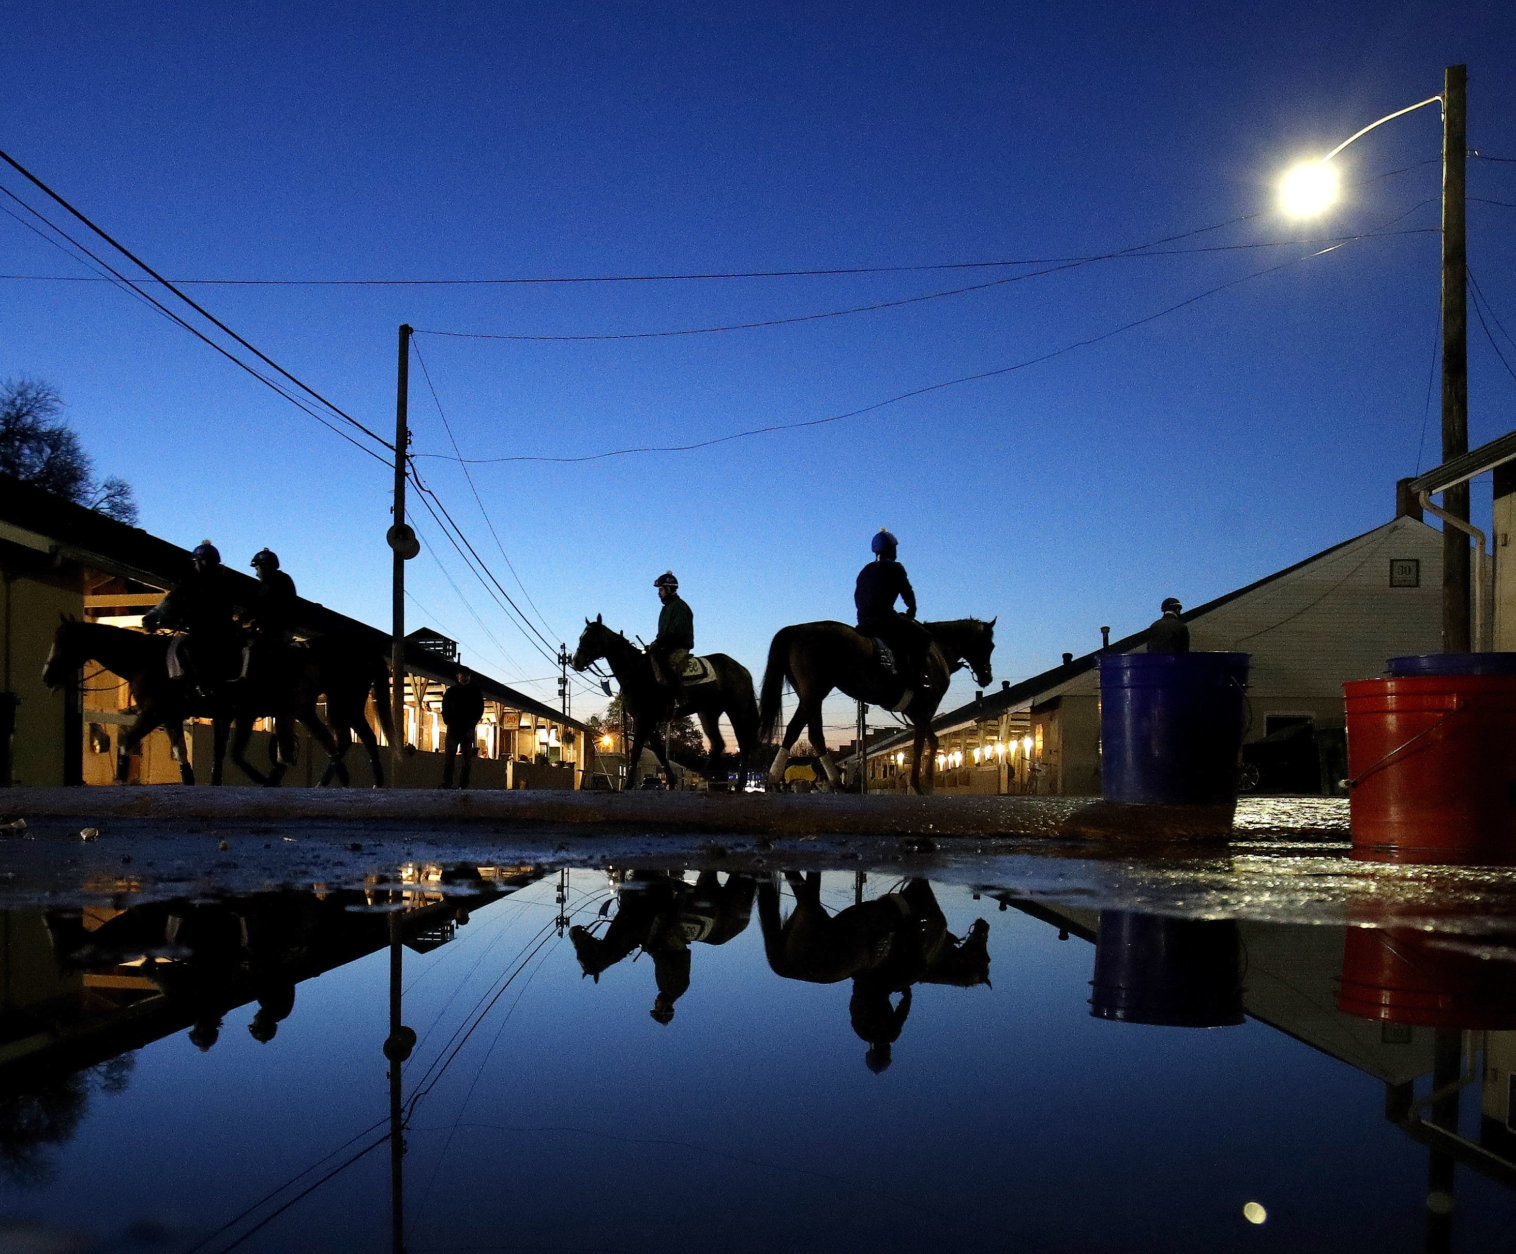 Horses make their way back to the barn after an early morning workout at Churchill Downs Monday, April 30, 2018, in Louisville, Ky. (AP Photo/Charlie Riedel, File)